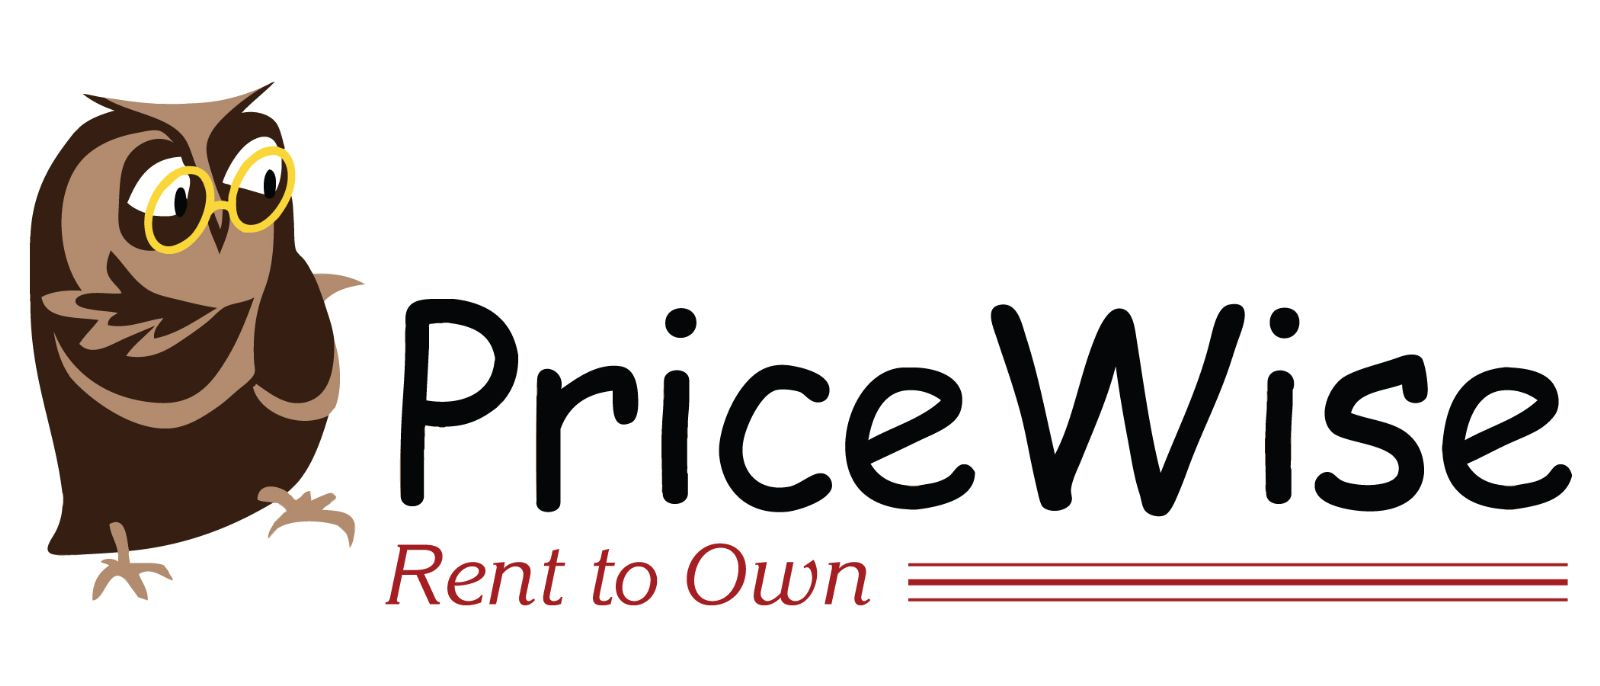 Pricewise Rent to Own